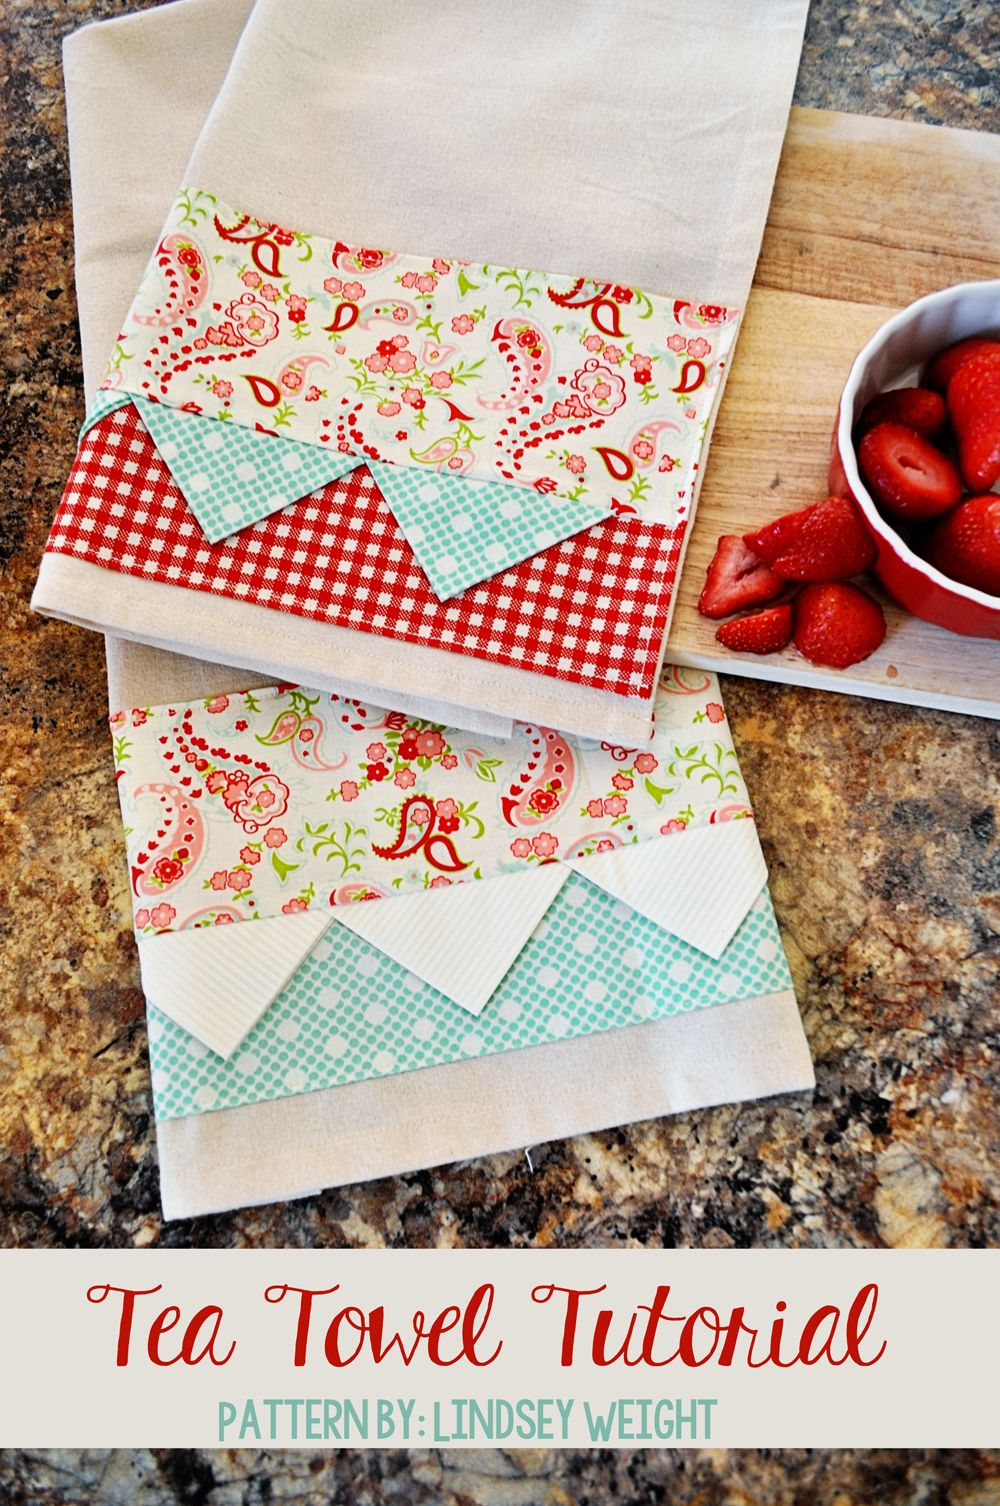 Vintage kitchen towel tutorial peek-a-boo pages.